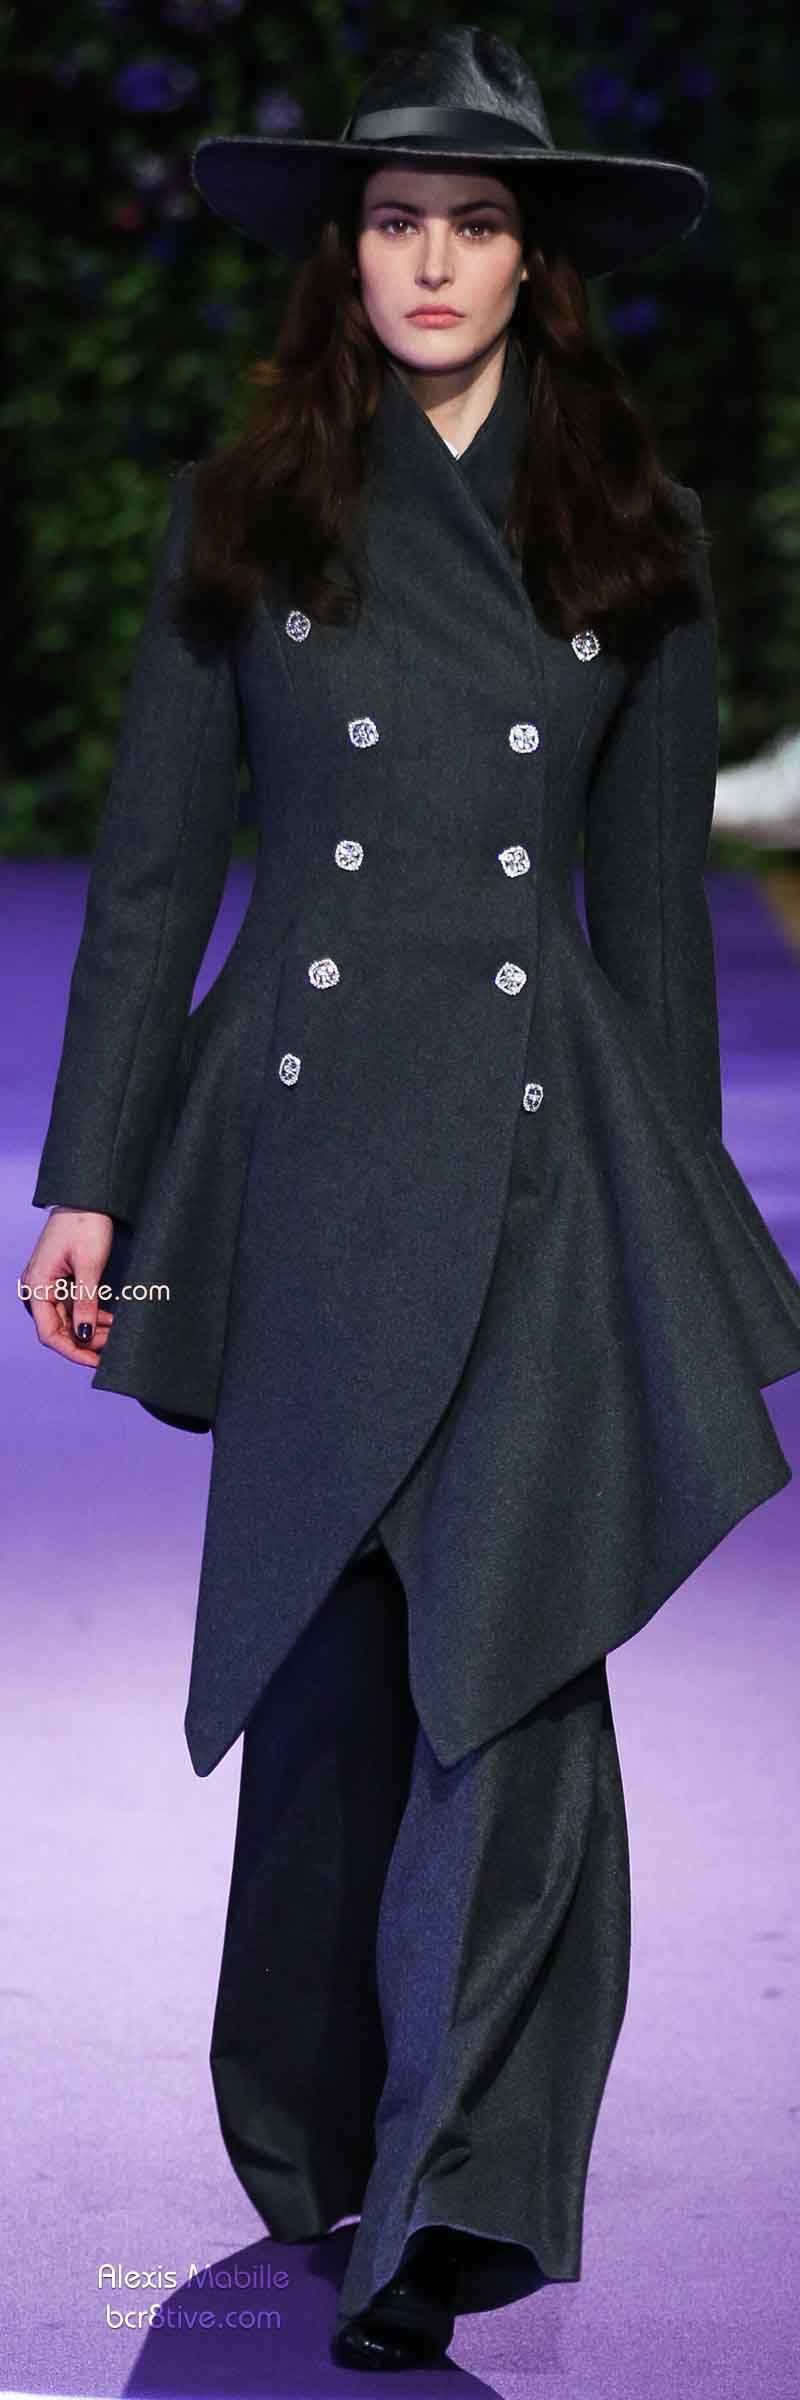 Fall 2014 Menswear Inspired Fashion - Alexis Mabille